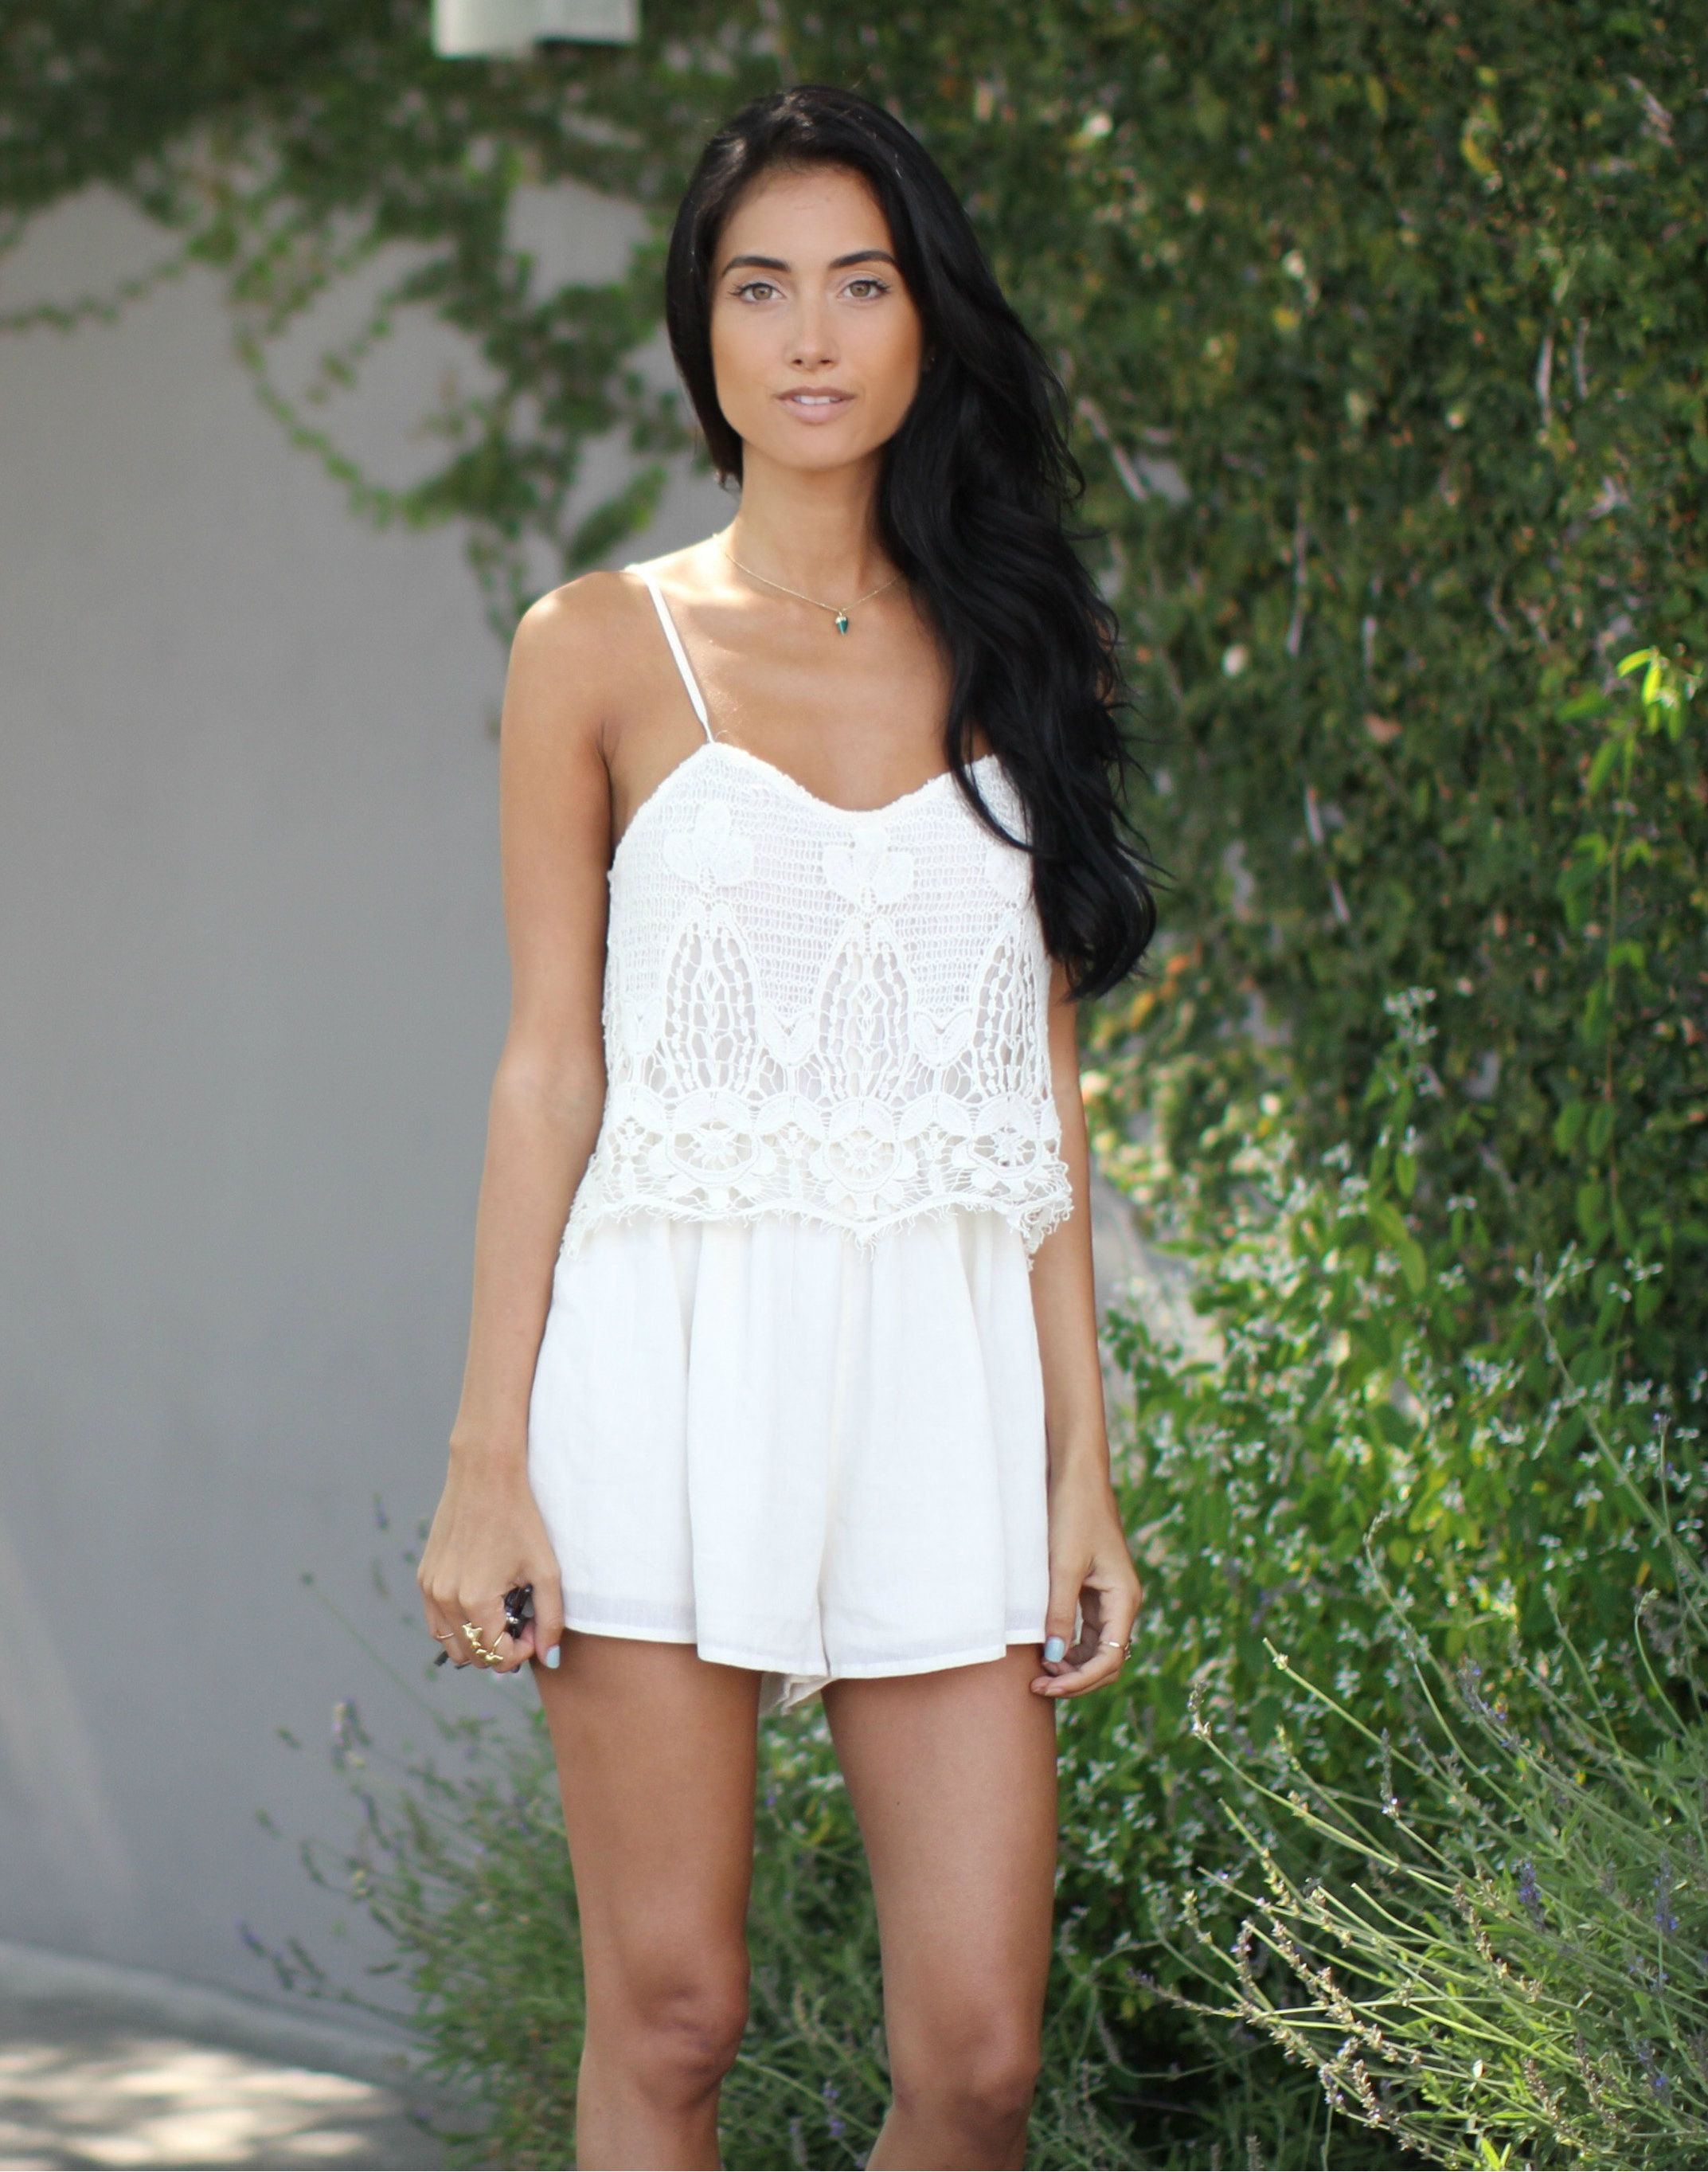 c851572627a2 Racquel Natasha pairs our Crocheted Front Romper with her favorite chunky  sandals and oversized sunglasses for the perfect summer outfit.  AEOSTYLE